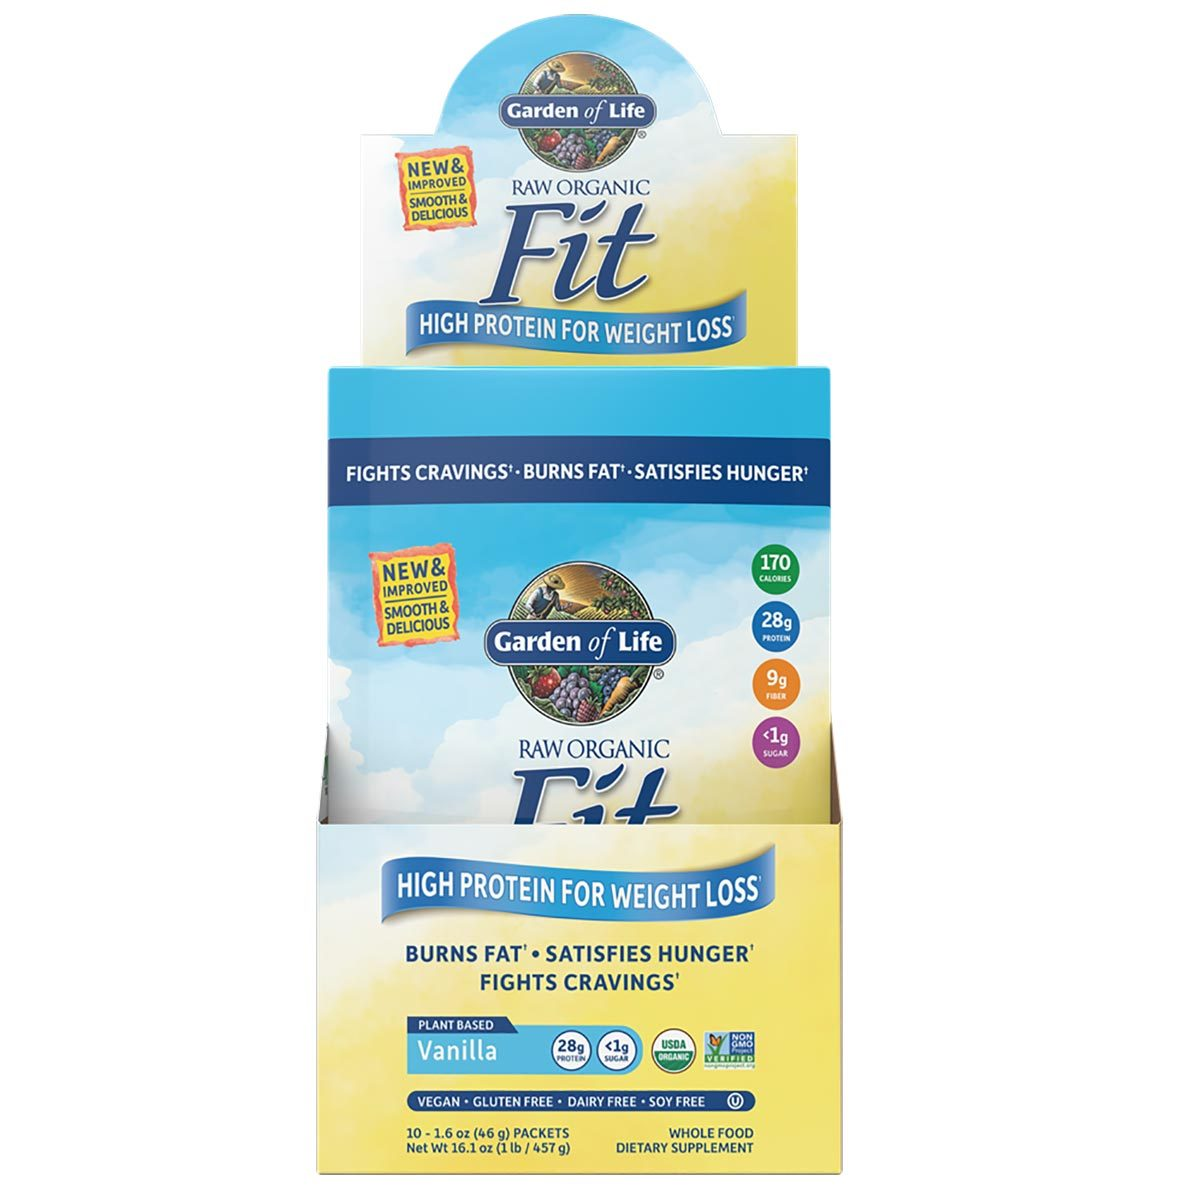 garden of life raw fit packets 10box - Garden Of Life Raw Fit